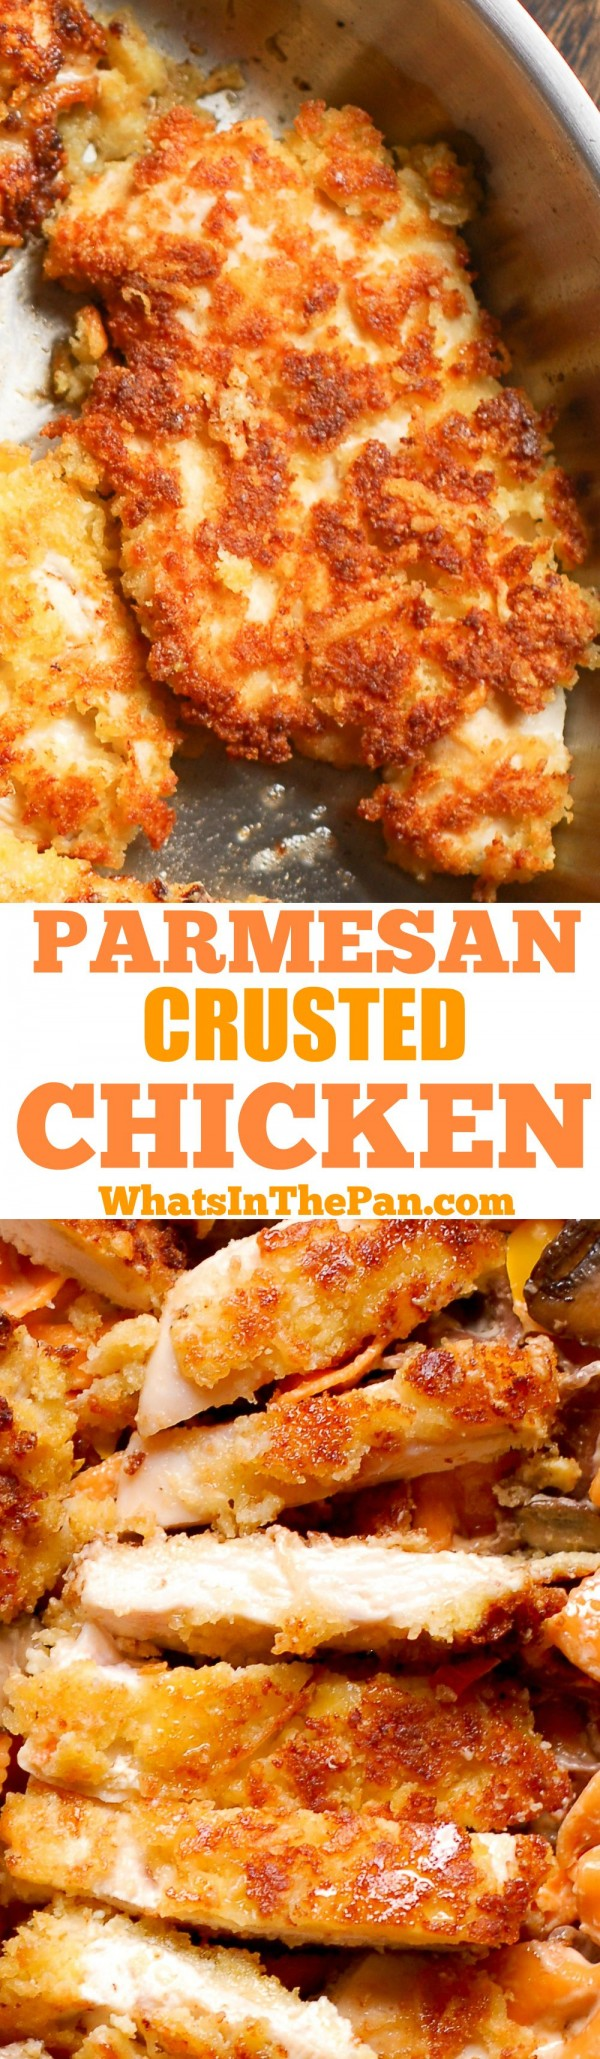 50 Best Chicken Recipes Ever - Check out this recipe for Parmesan crusted chicken. Yummy! #RecipeIdeas @recipes_to_go